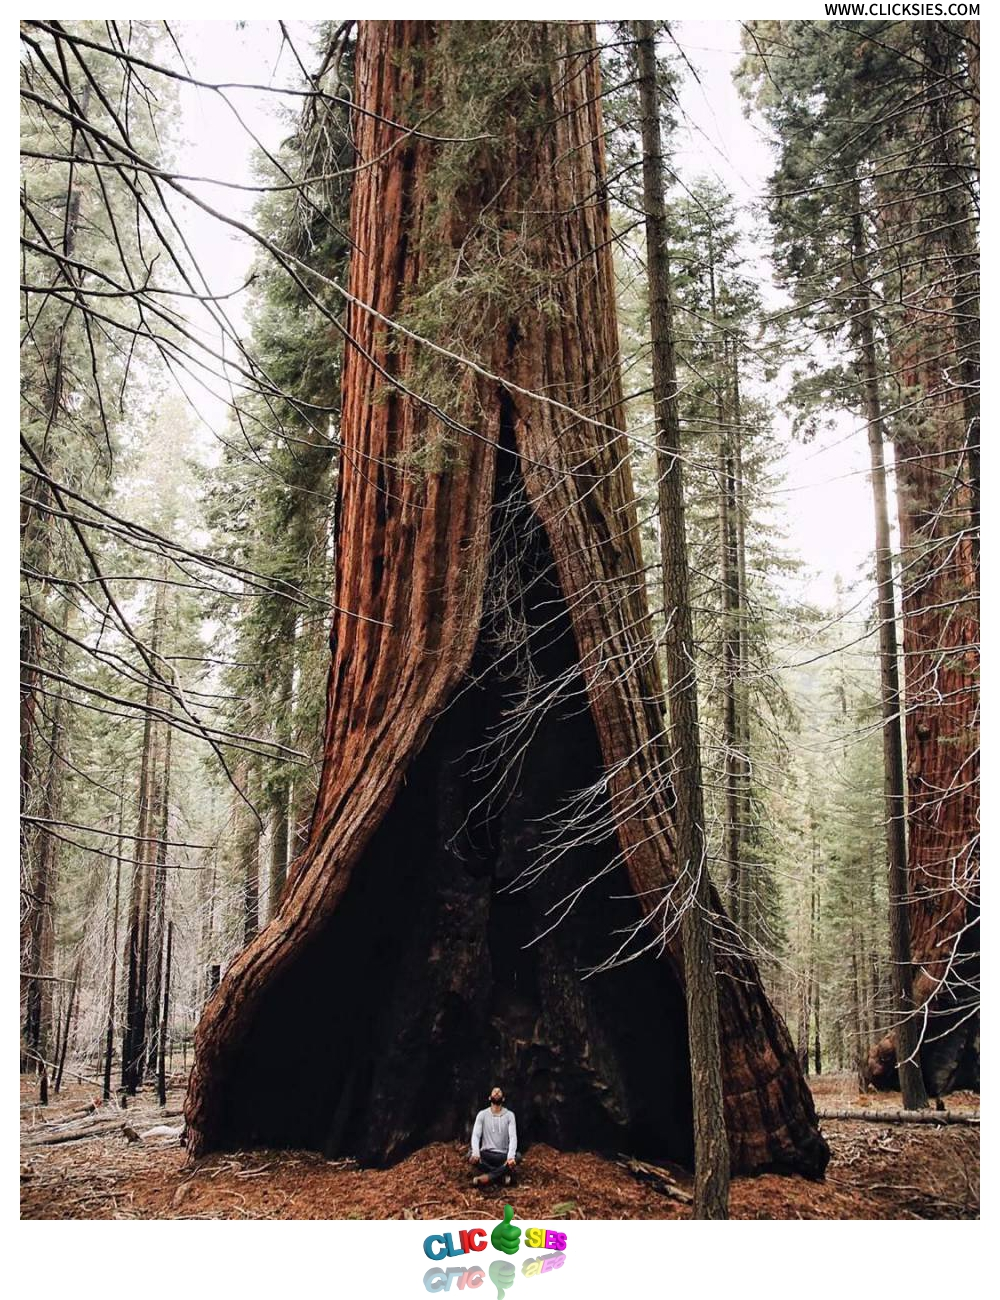 The heart tree in Sequoia National Park California - www.clicksies.com